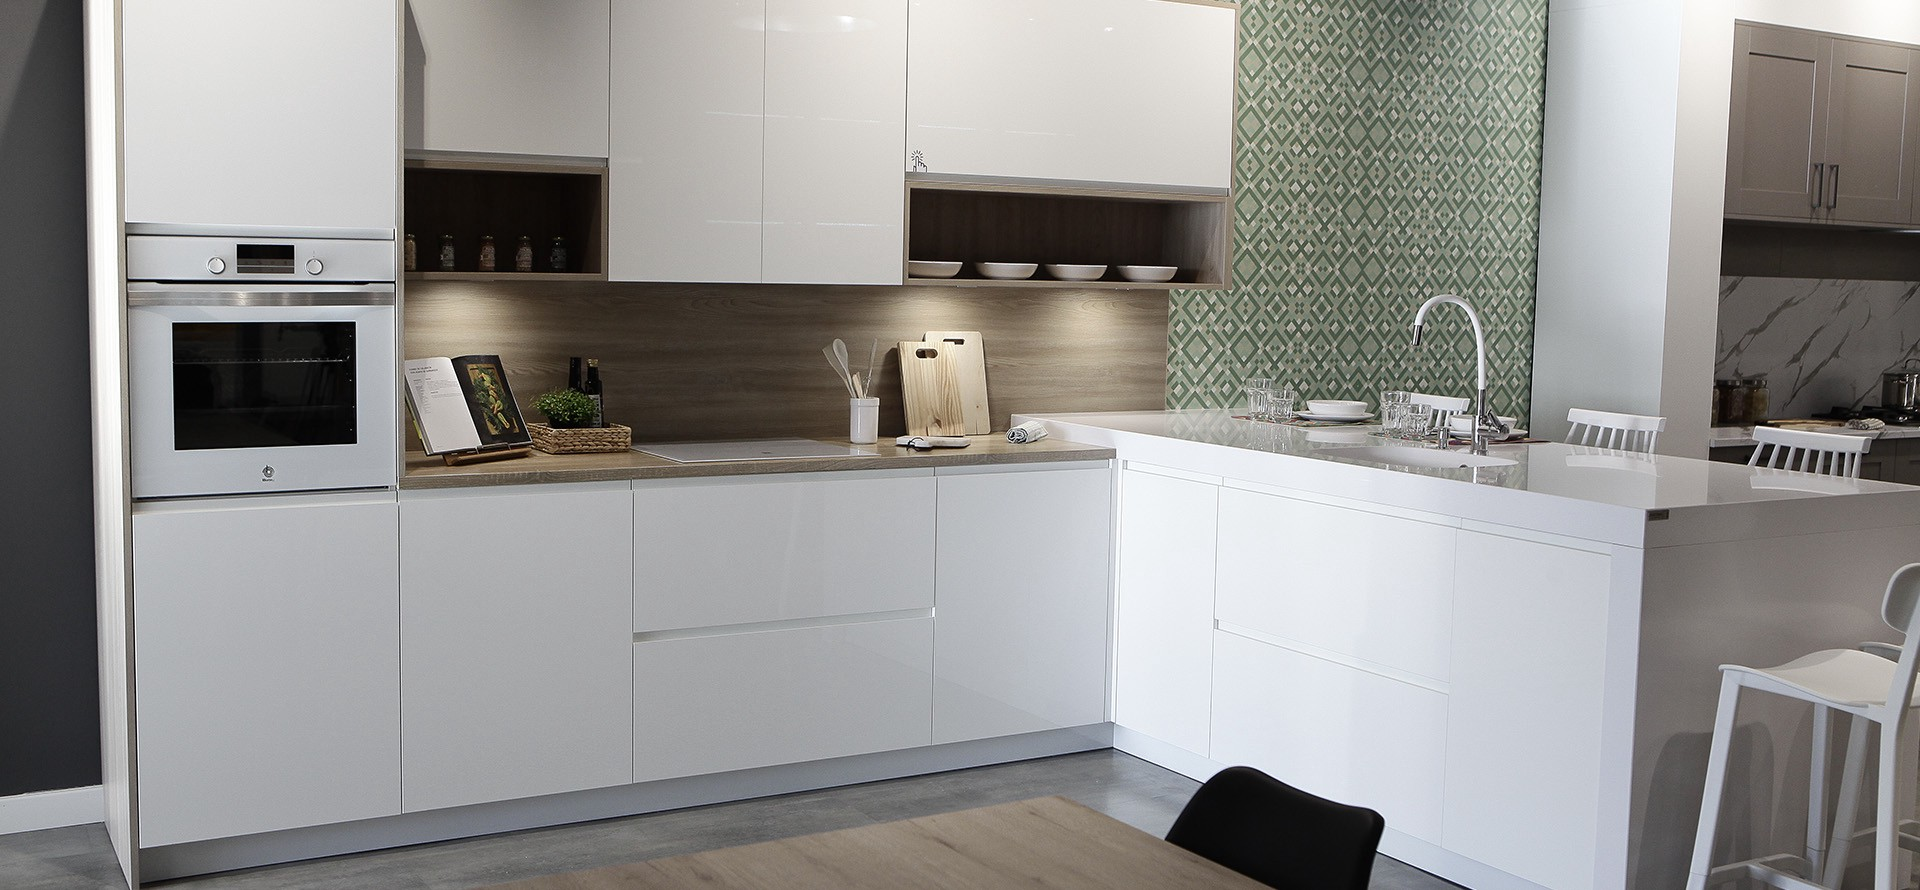 4 Simple Tips To Help You Create The Best Kitchen Cabinet Design And Setup By Lioher Medium